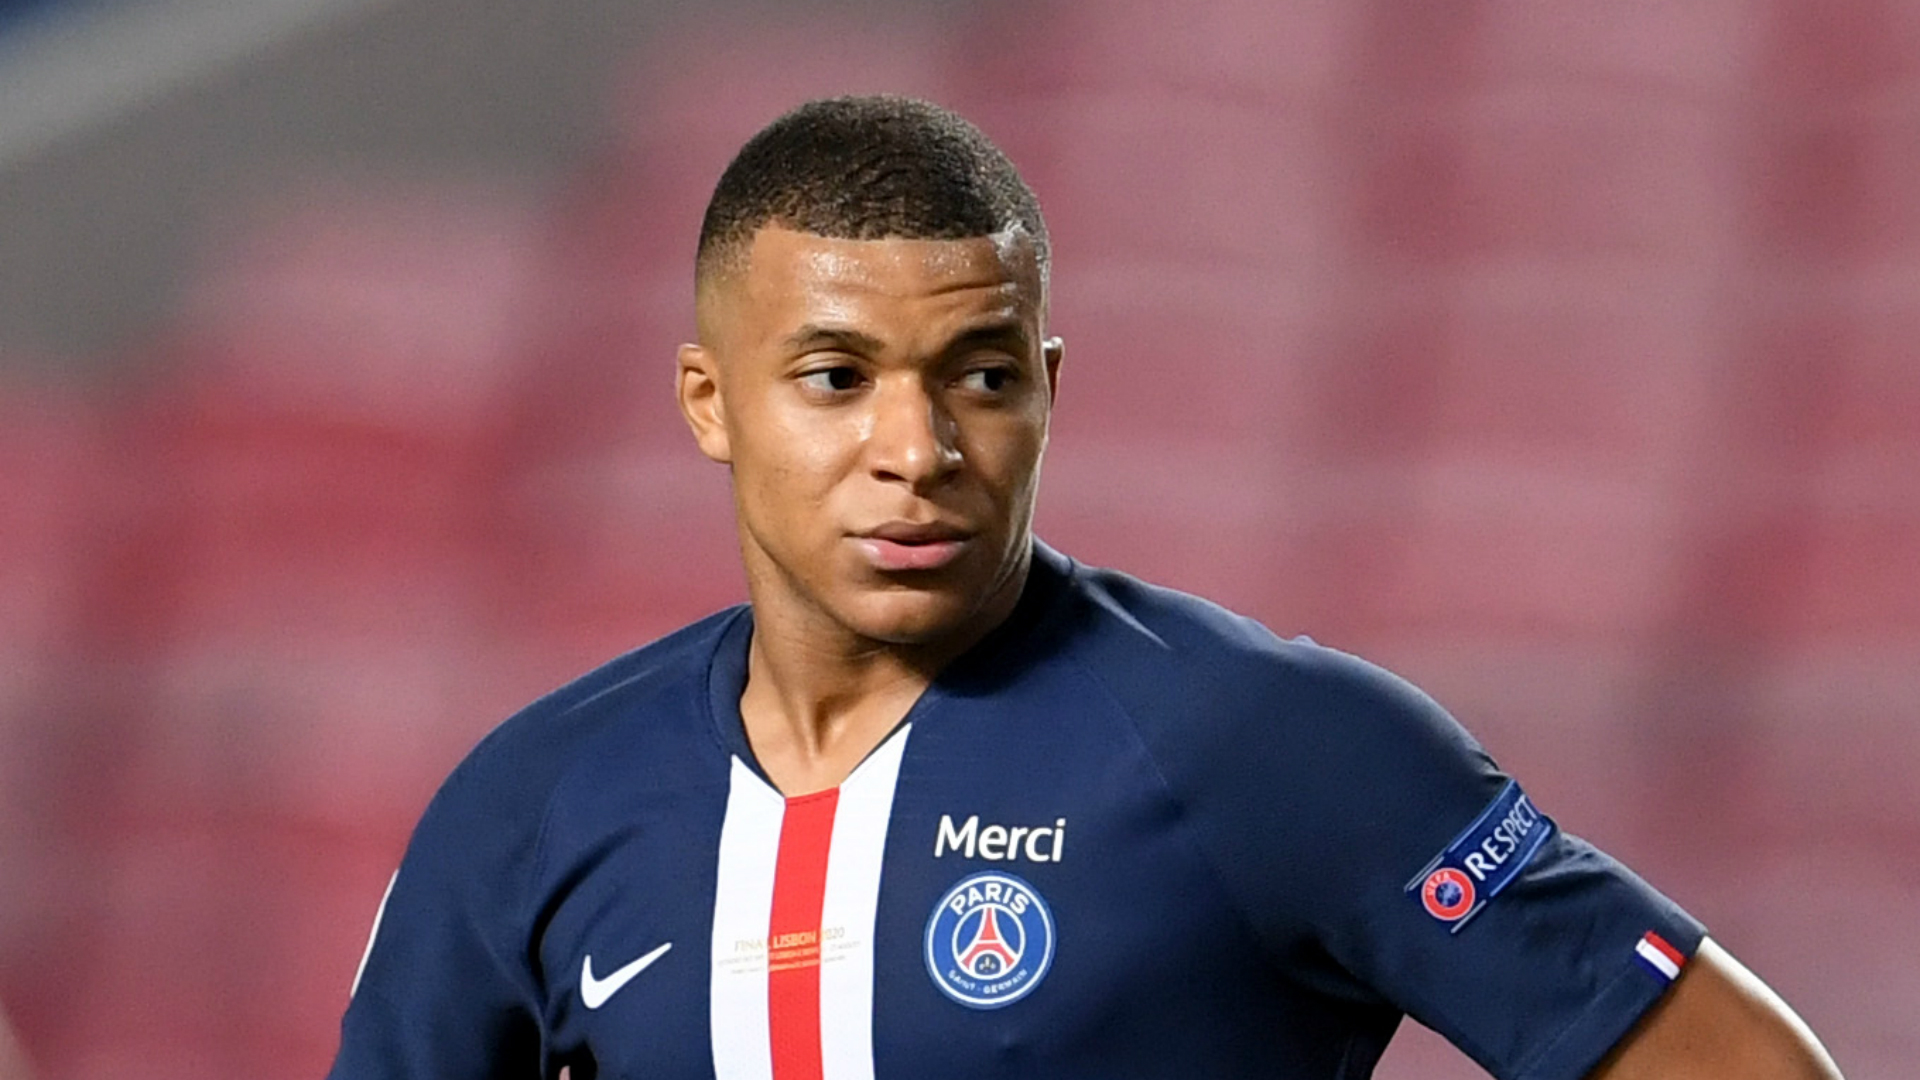 Rumour Has It: Real Madrid, Liverpool in regular contact with PSG star Mbappe